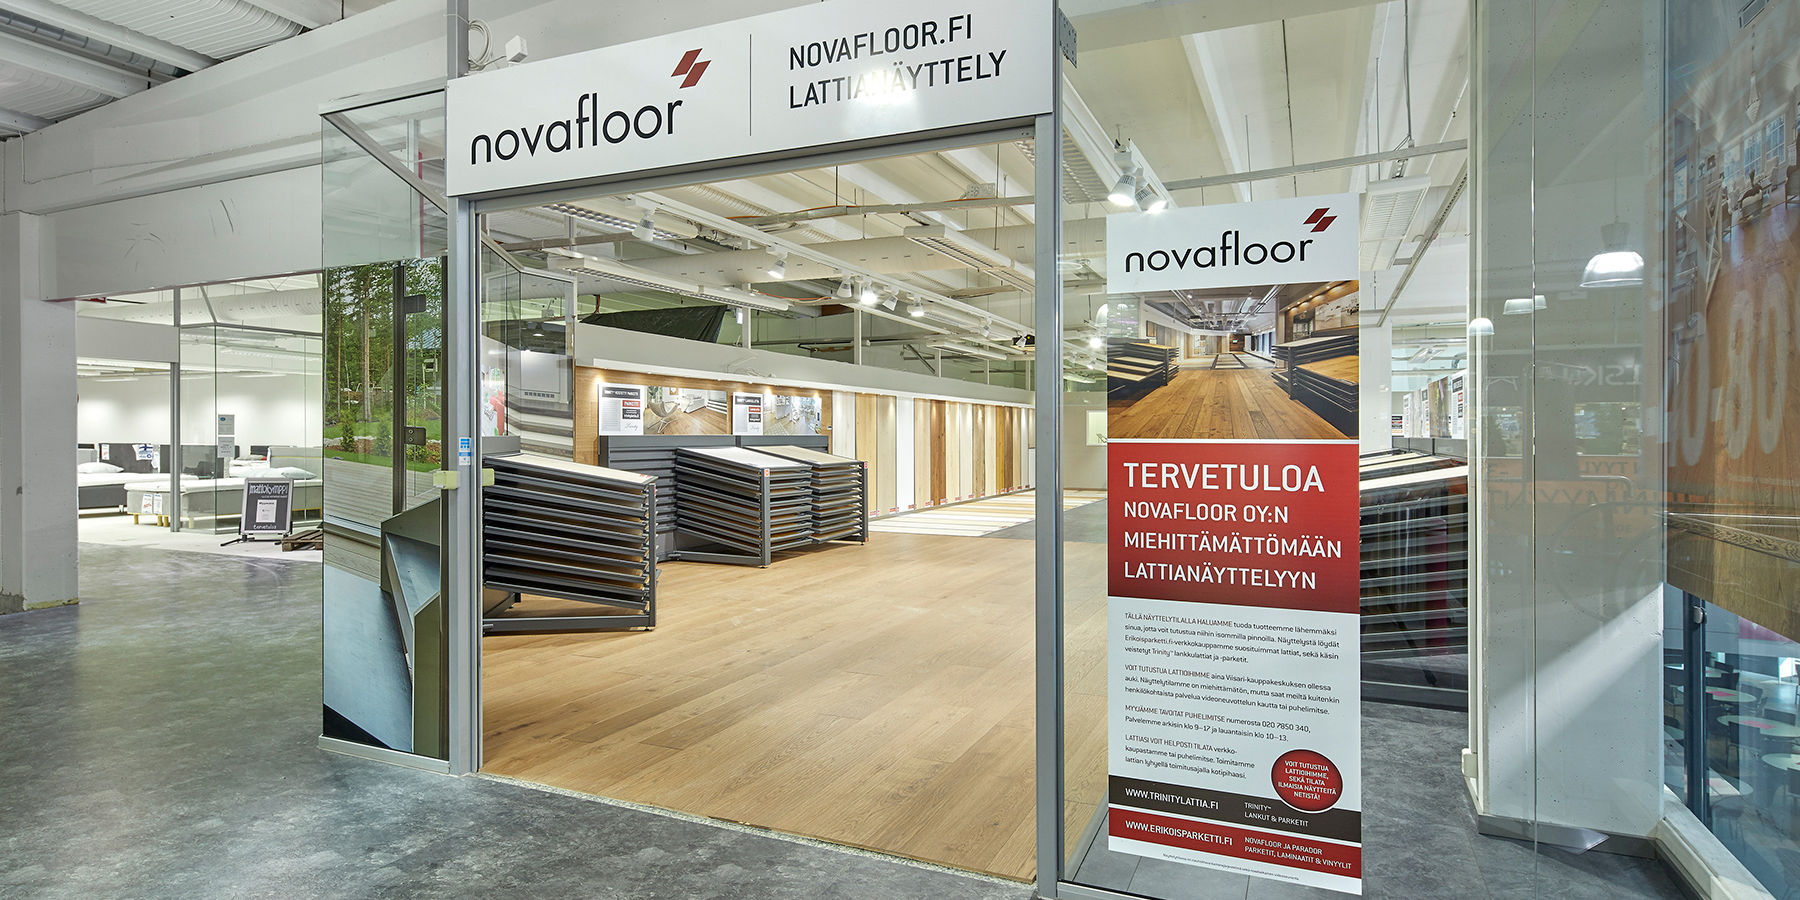 Novafloor.fi showroom